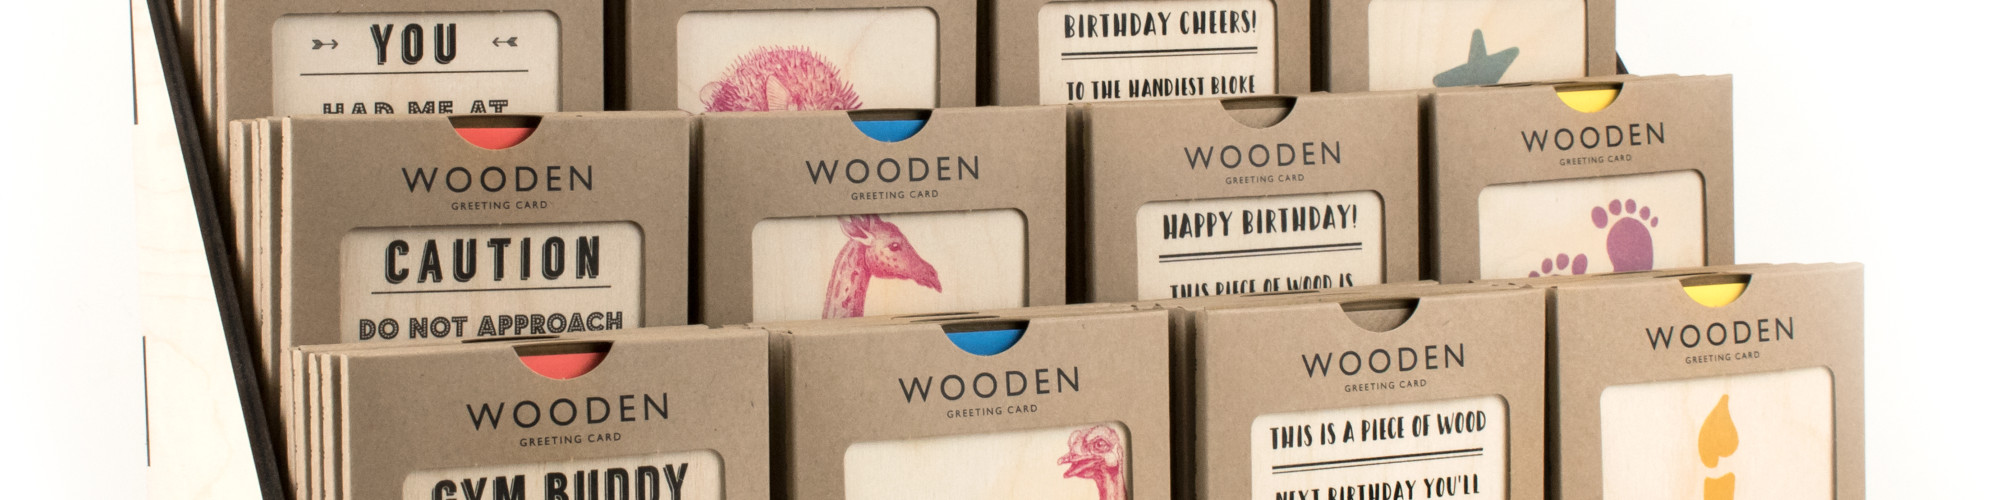 The new packaging for Coulson Macleod's wooden card range in the bespoke PoS unit.